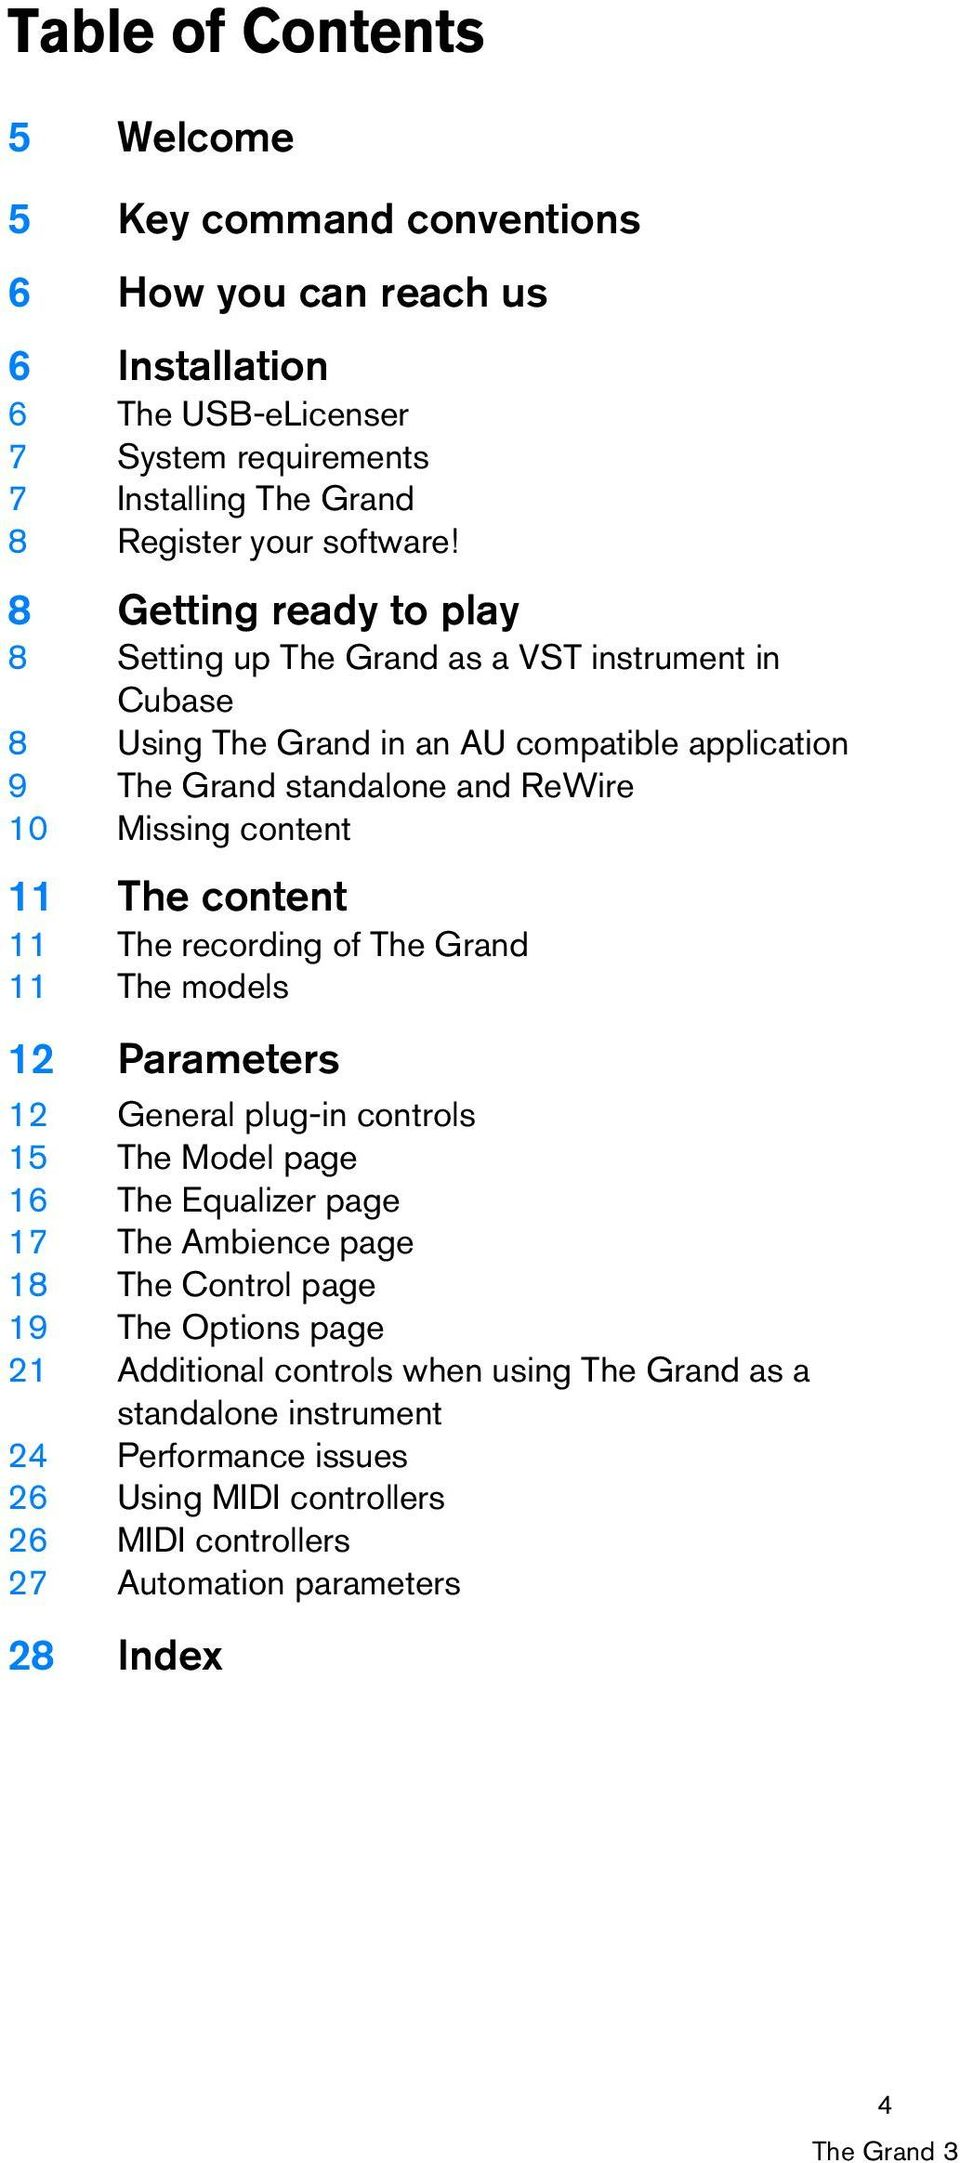 The content 11 The recording of The Grand 11 The models 12 Parameters 12 General plug-in controls 15 The Model page 16 The Equalizer page 17 The Ambience page 18 The Control page 19